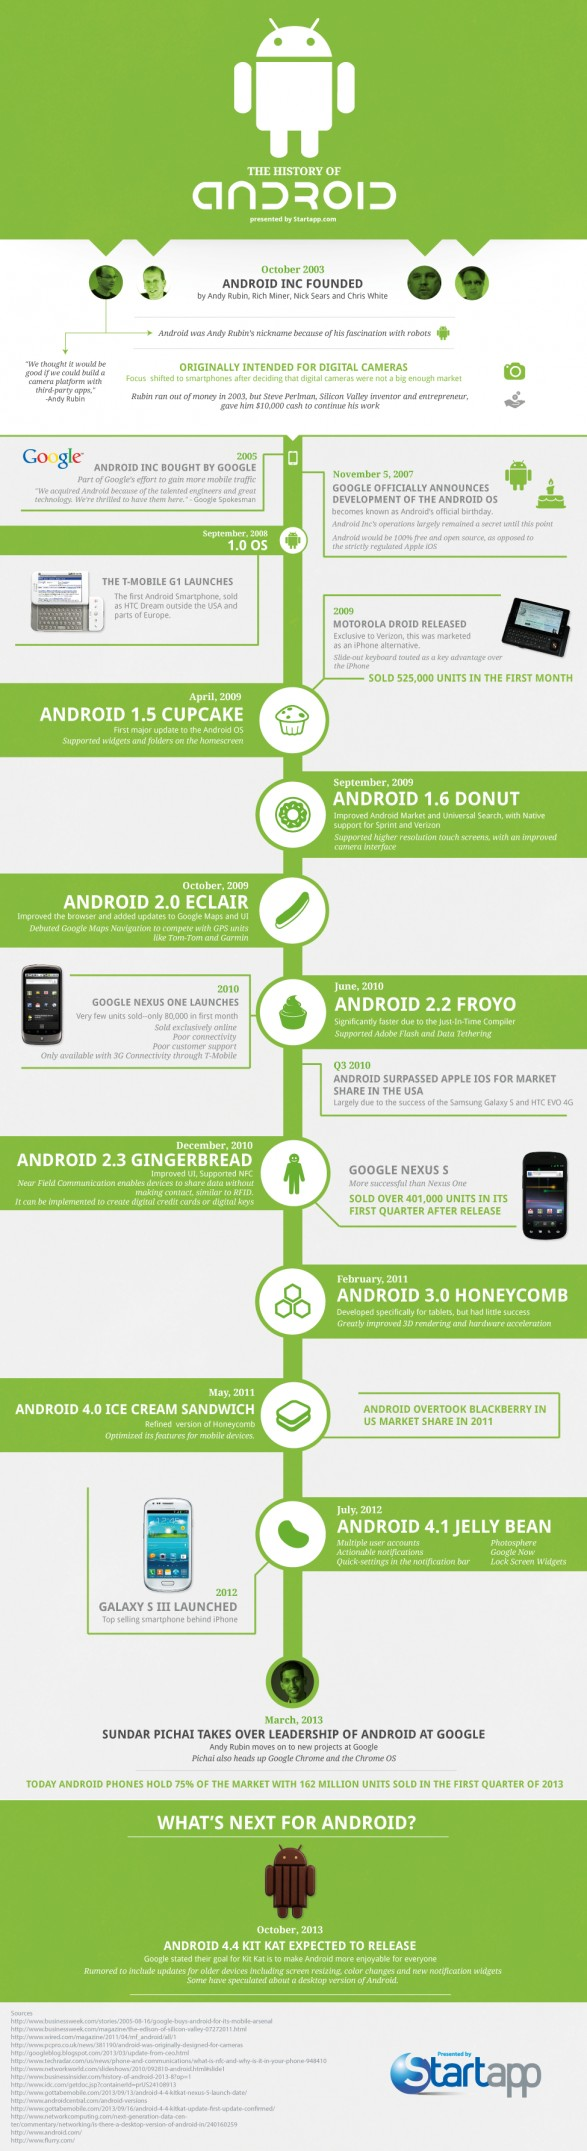 the-history-of-android_526581535548d_w587